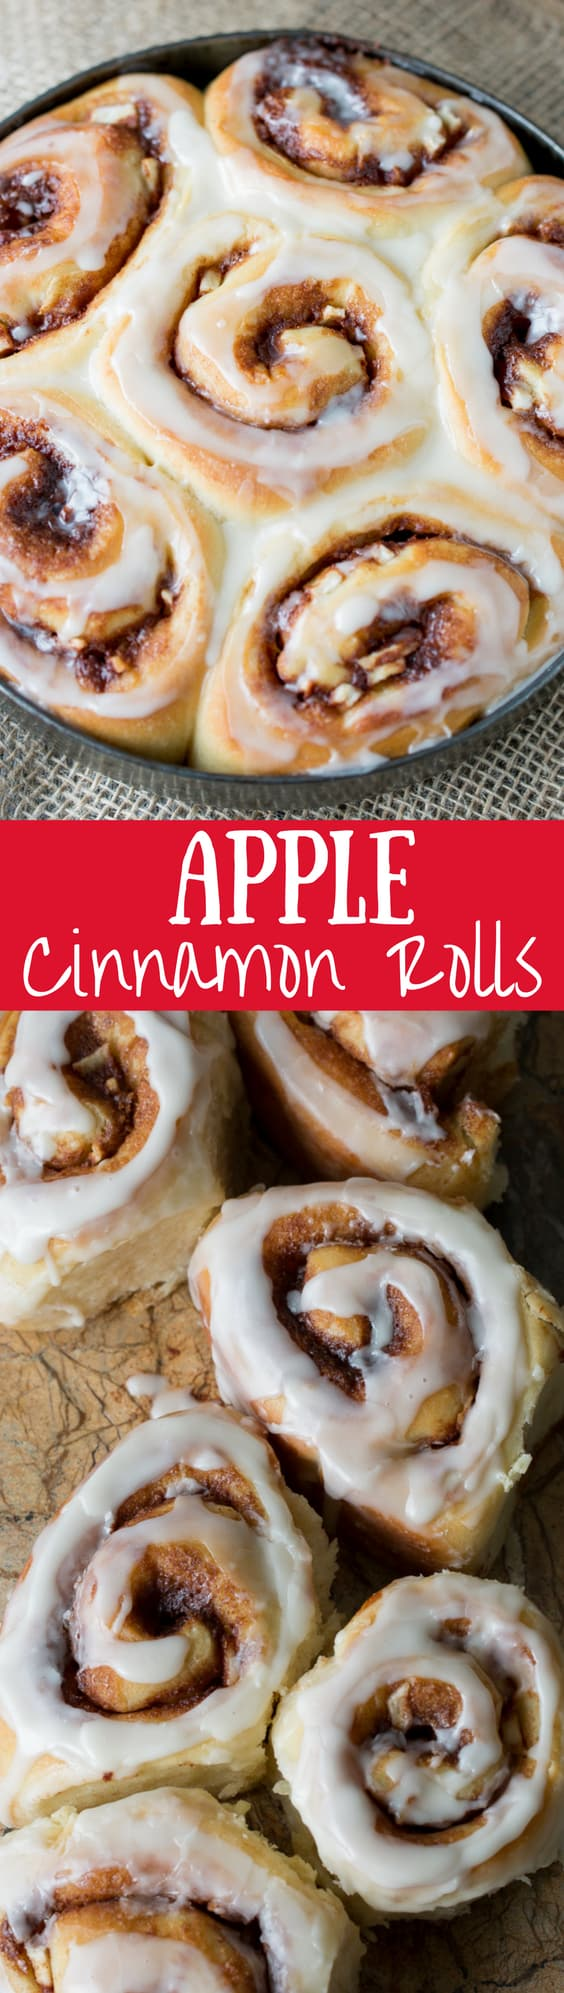 Apple Cinnamon Rolls with an Apple Cider Glaze - not too sweet but great apple flavor!  www.savingdessert.com